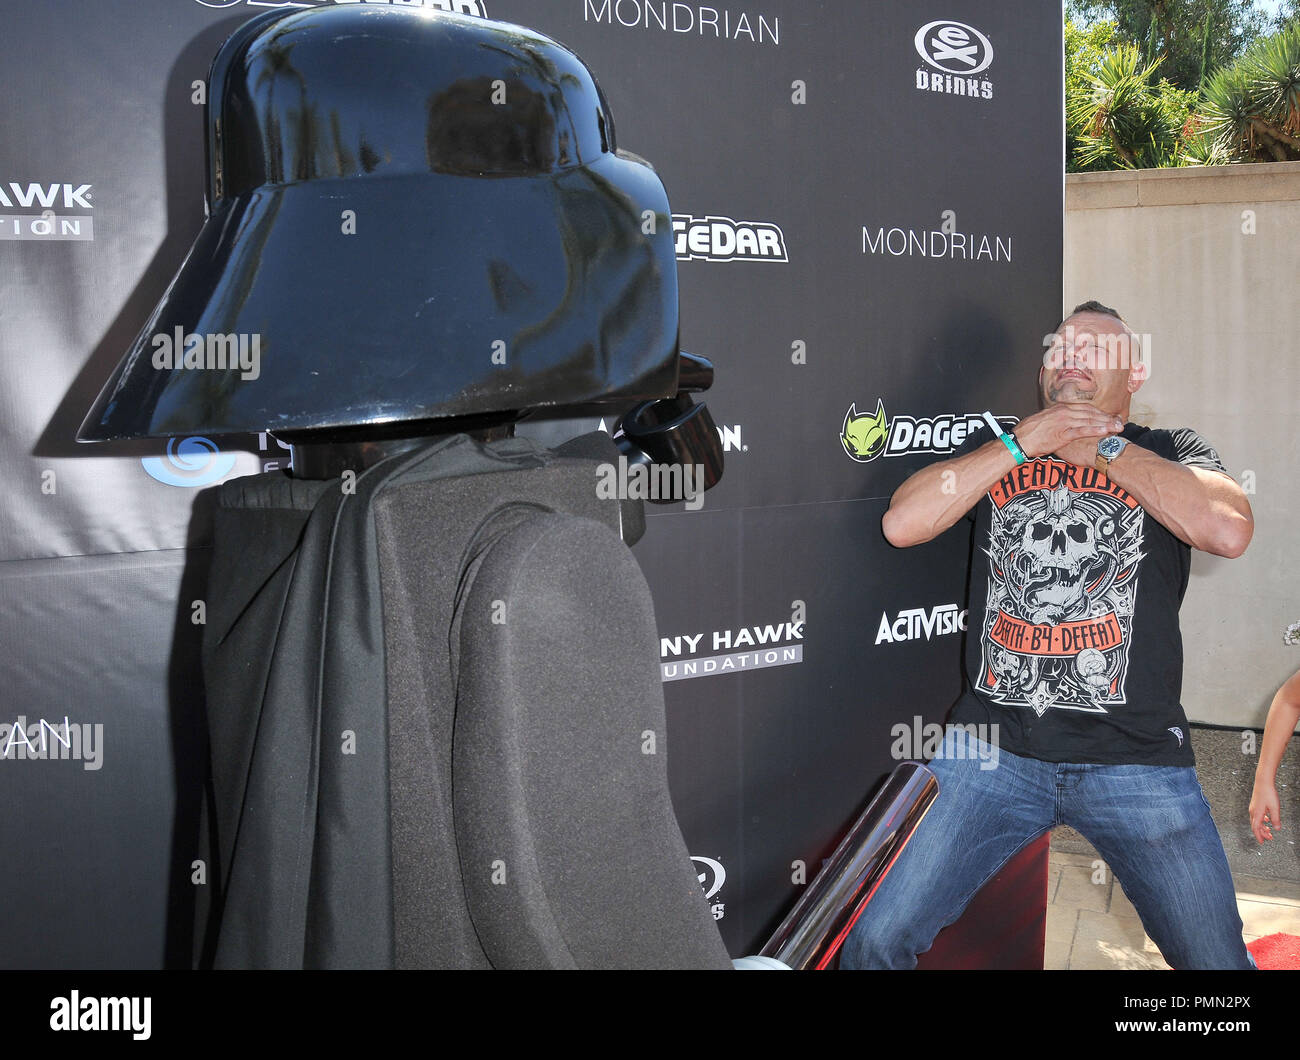 UFC Fighter Chuck Liddell & Lego Darth Vader at Tony Hawk's 8th Annual Stand Up For Skateparks Benefit held at Ron Burkle's Green Acres Estate in Beverly Hills, CA. The event took place on Sunday, October 2, 2011. Photo by PRPP_Pacific Rim Photo Press/ PictureLux - Stock Image